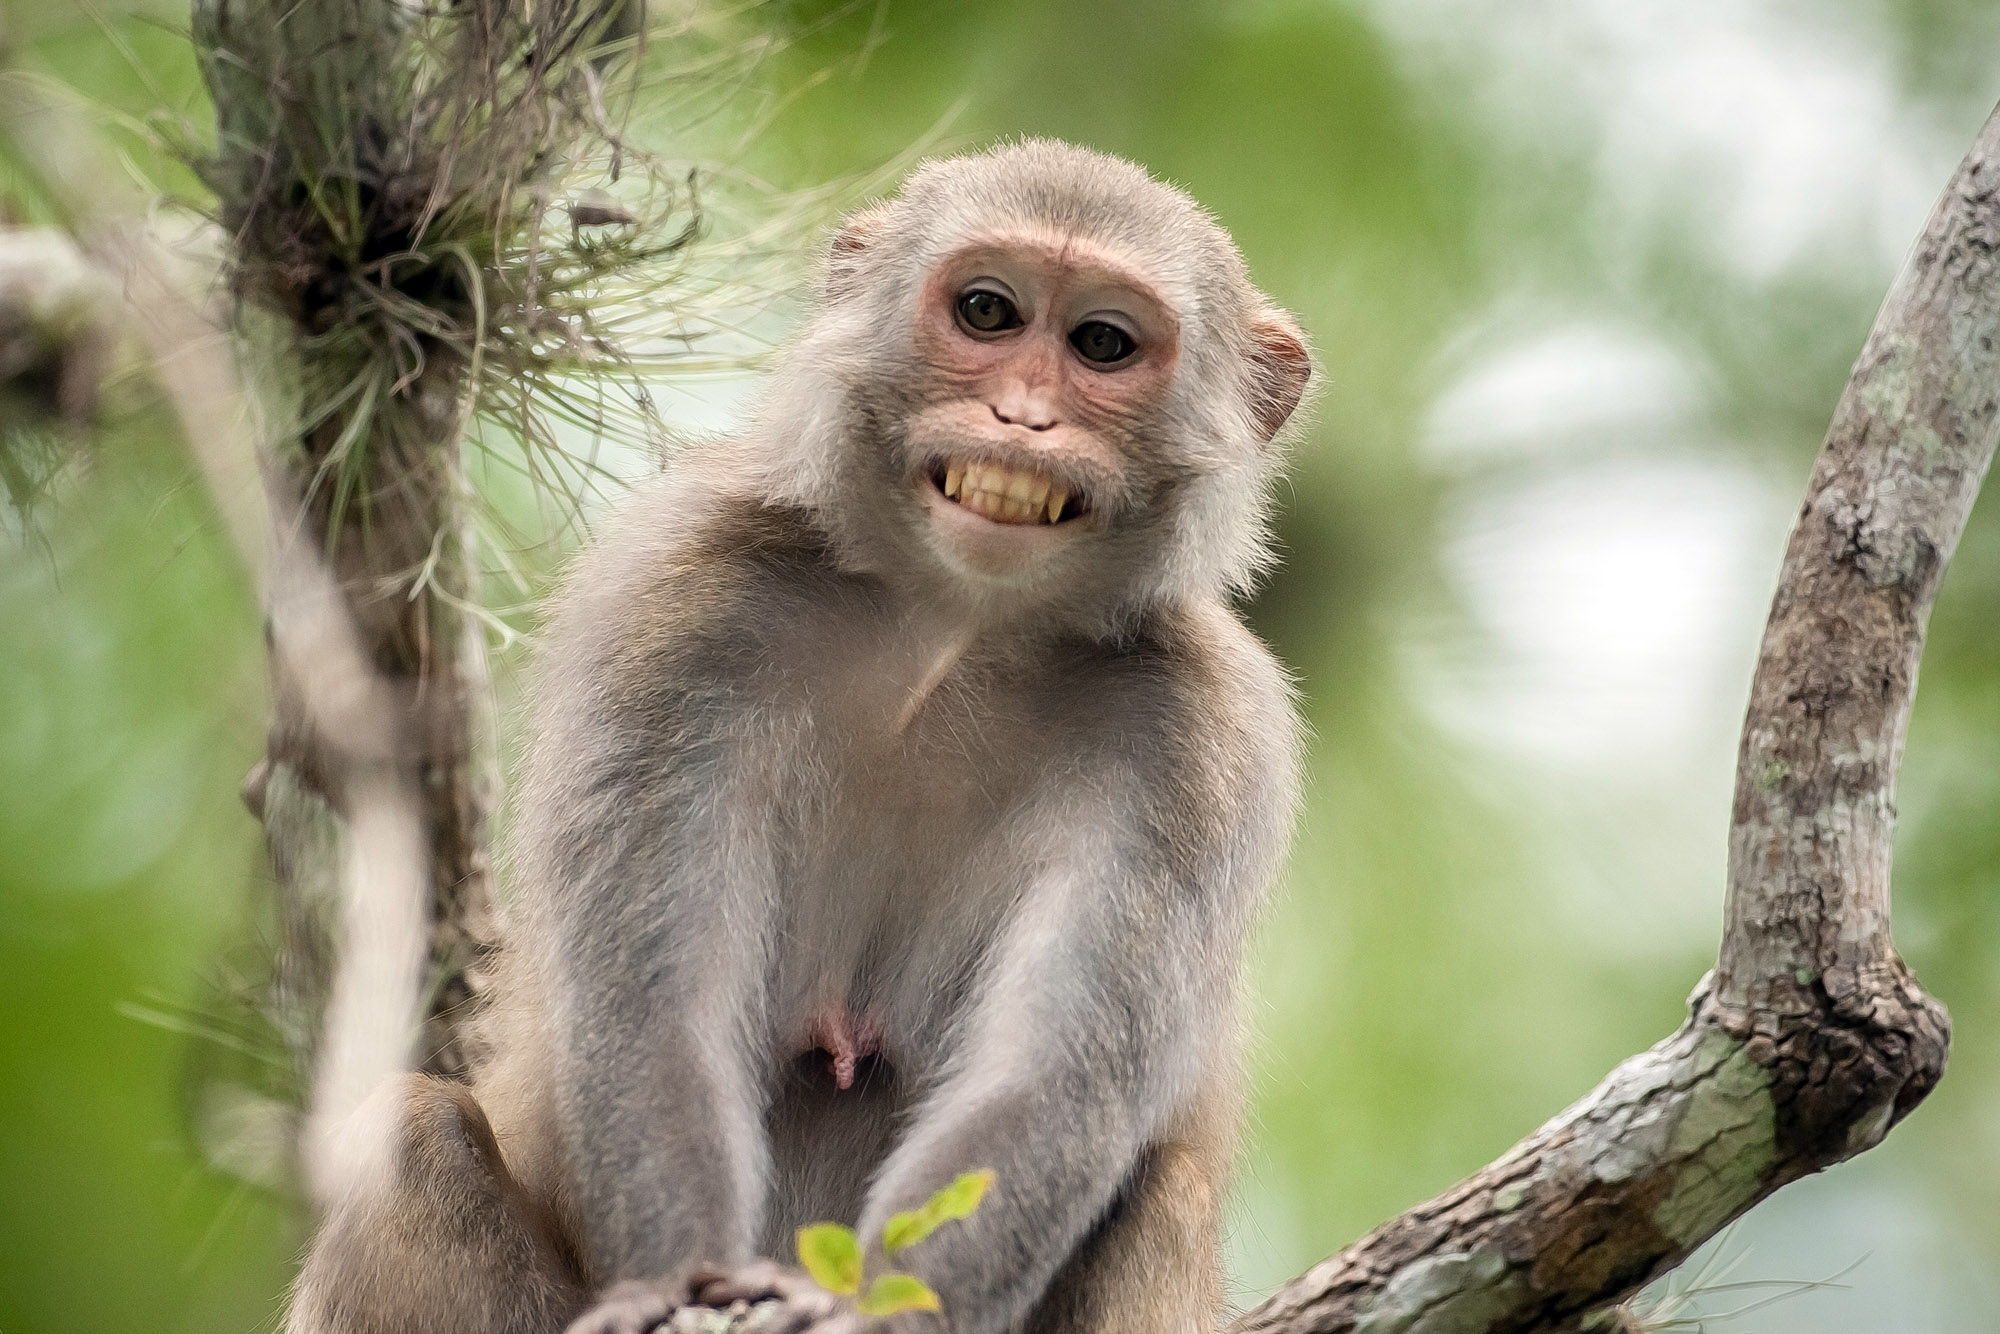 images of monkeys smile